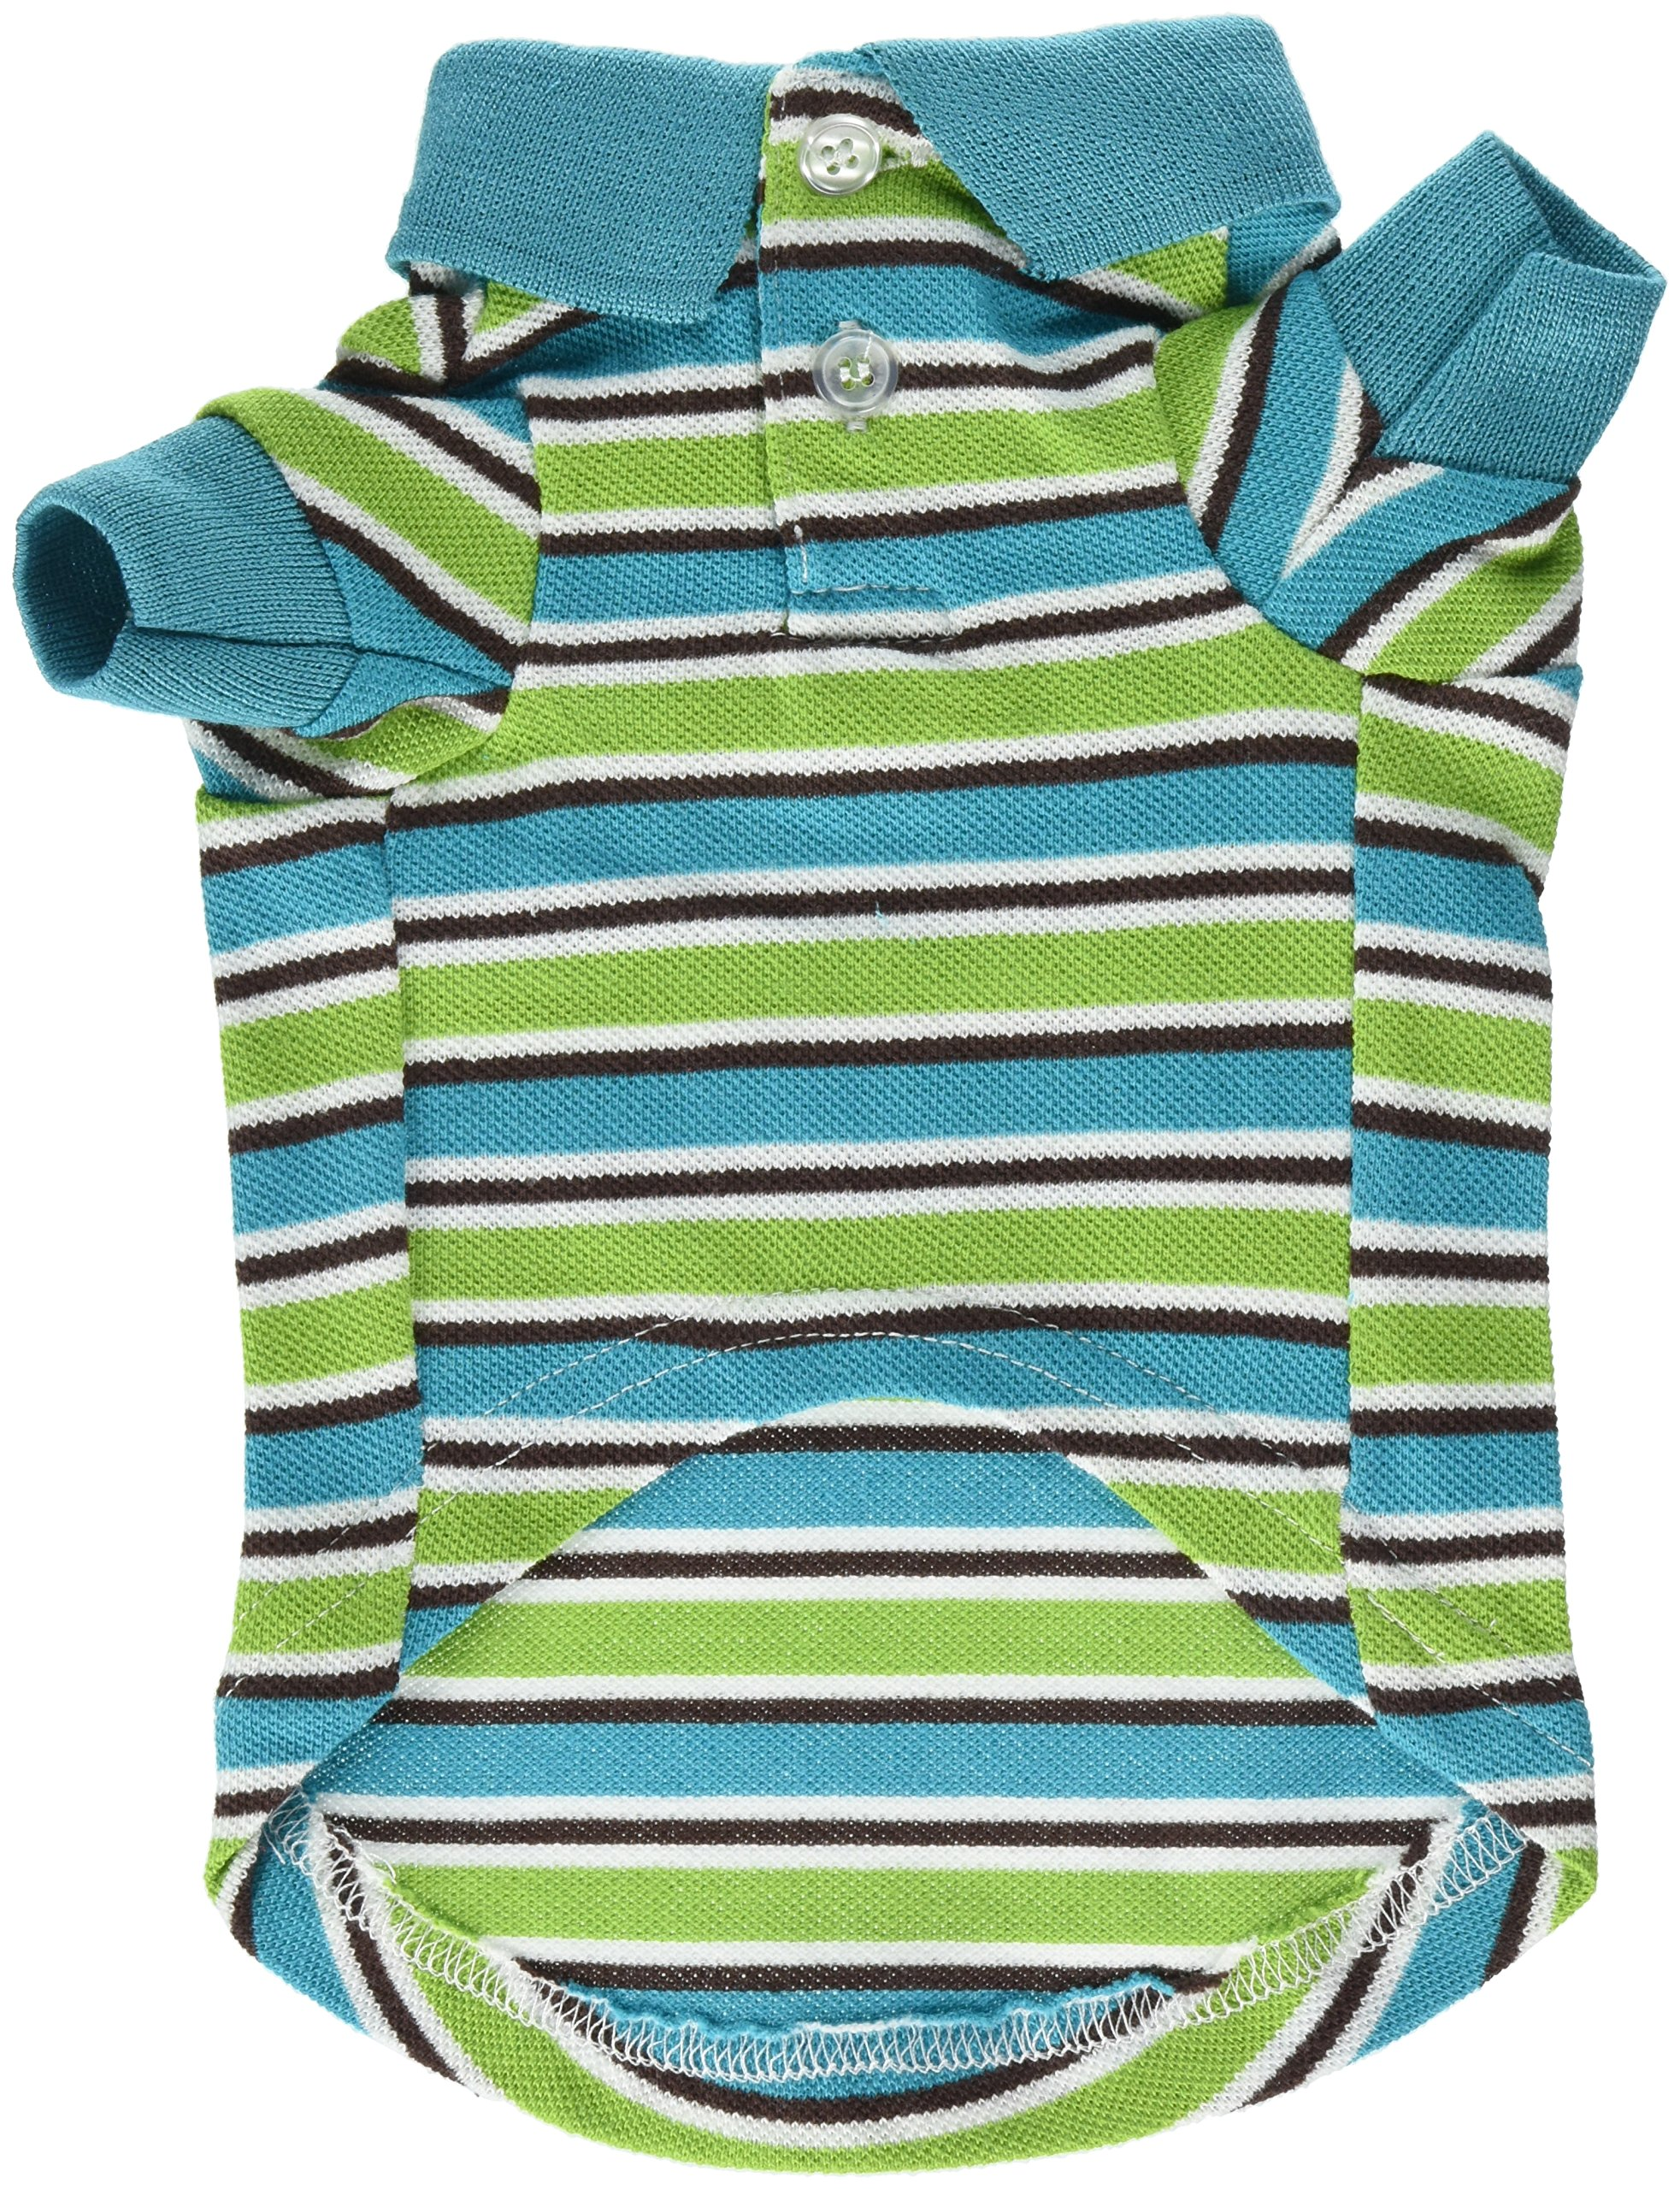 East Side Collection ZM3023 10 16 Brite Striped Polo Top for Dogs, X-Small, Bluebird